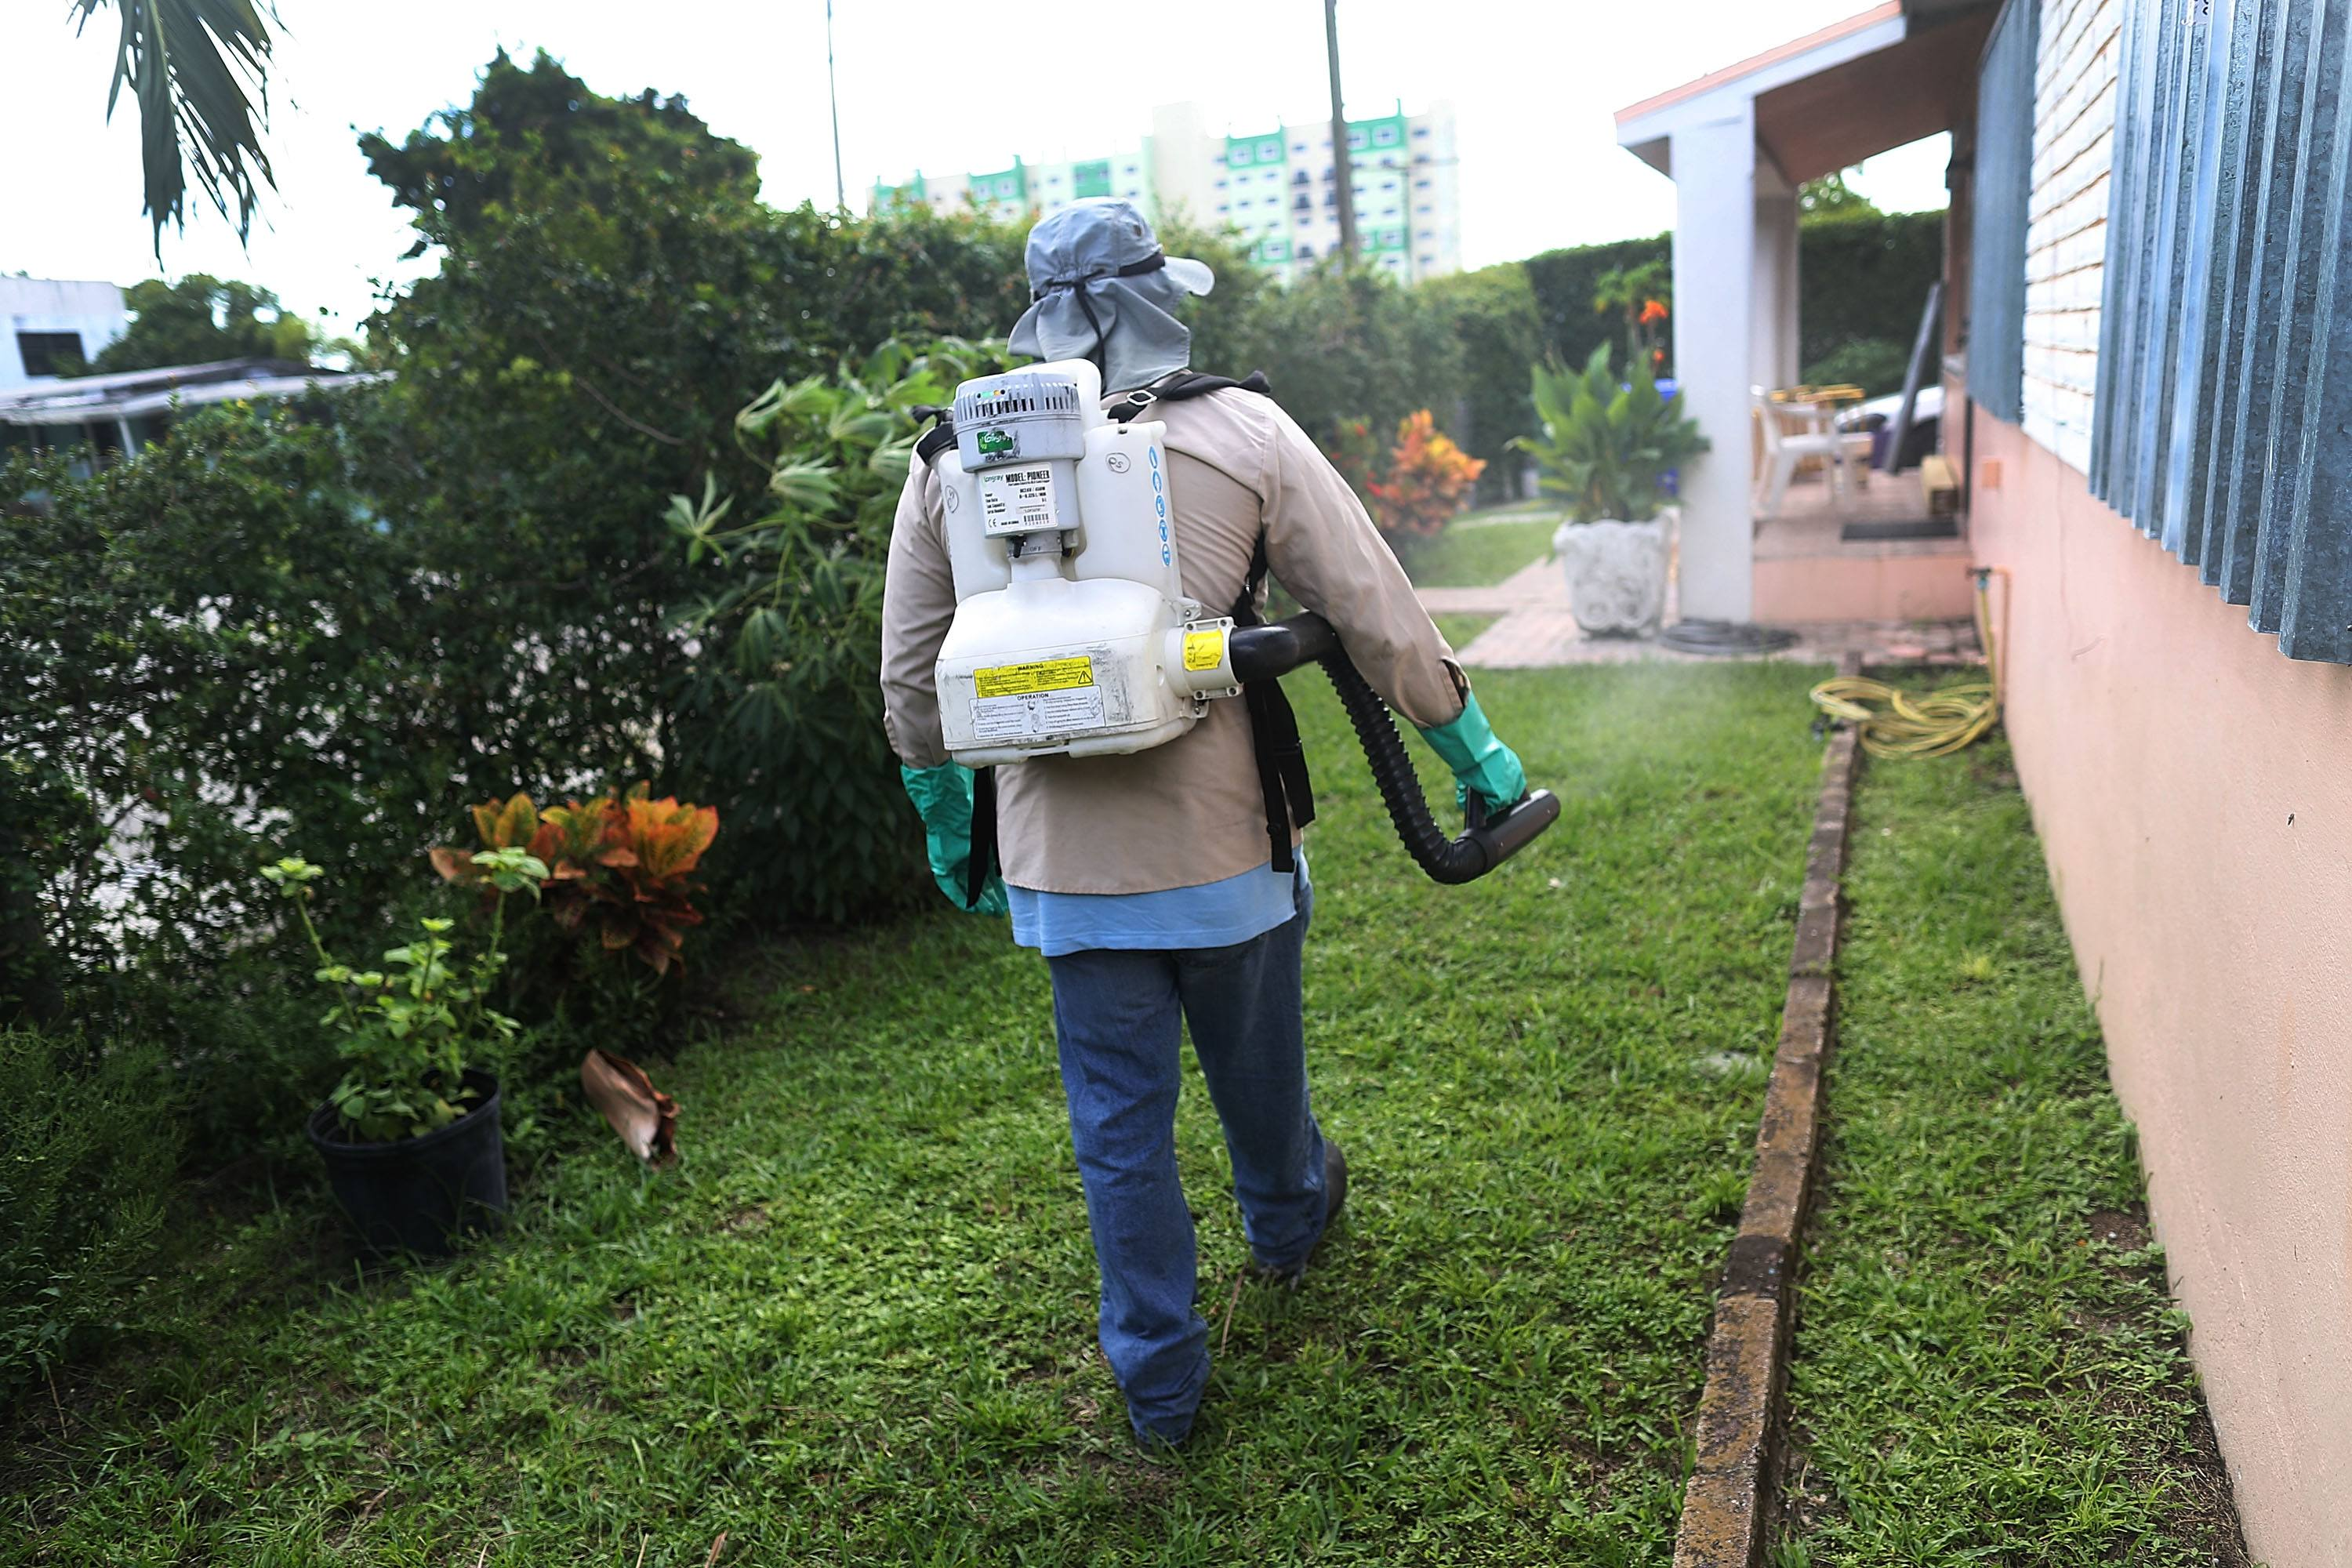 A man sprays pesticide around a building